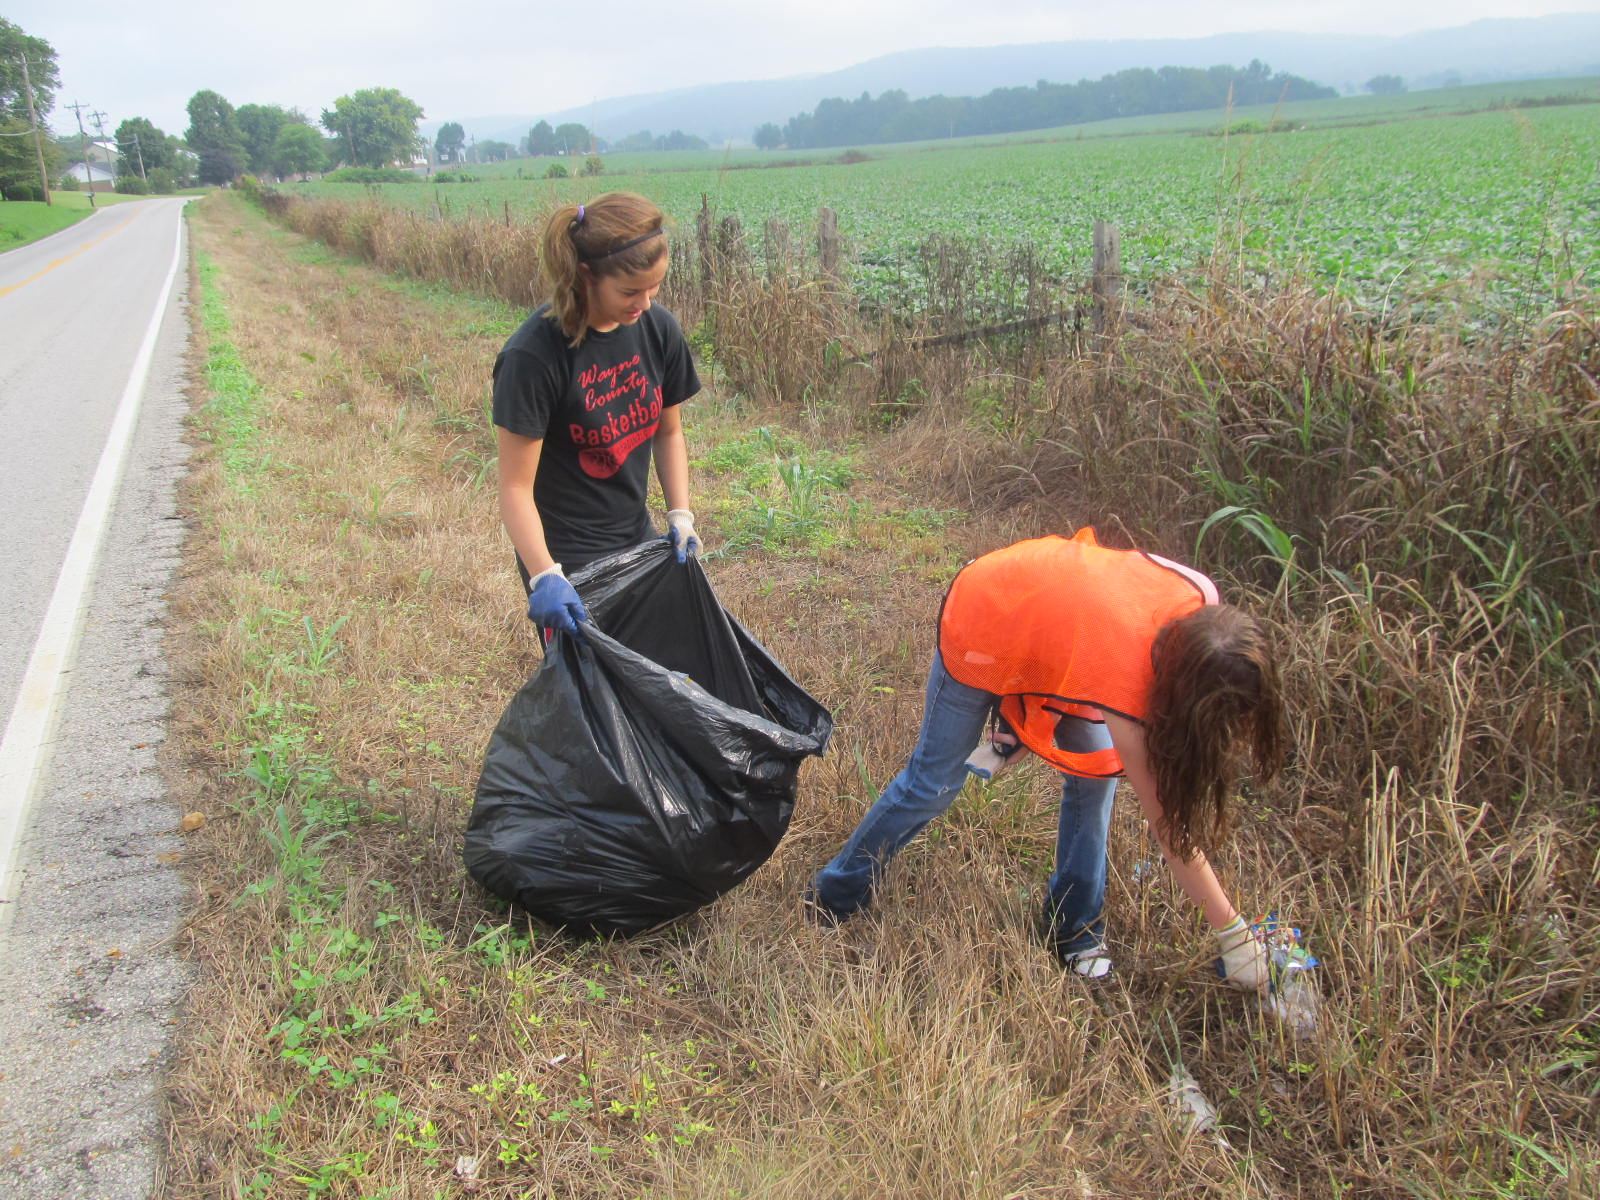 Garbage Pick Up : Jrotc cadets making a difference in our environment